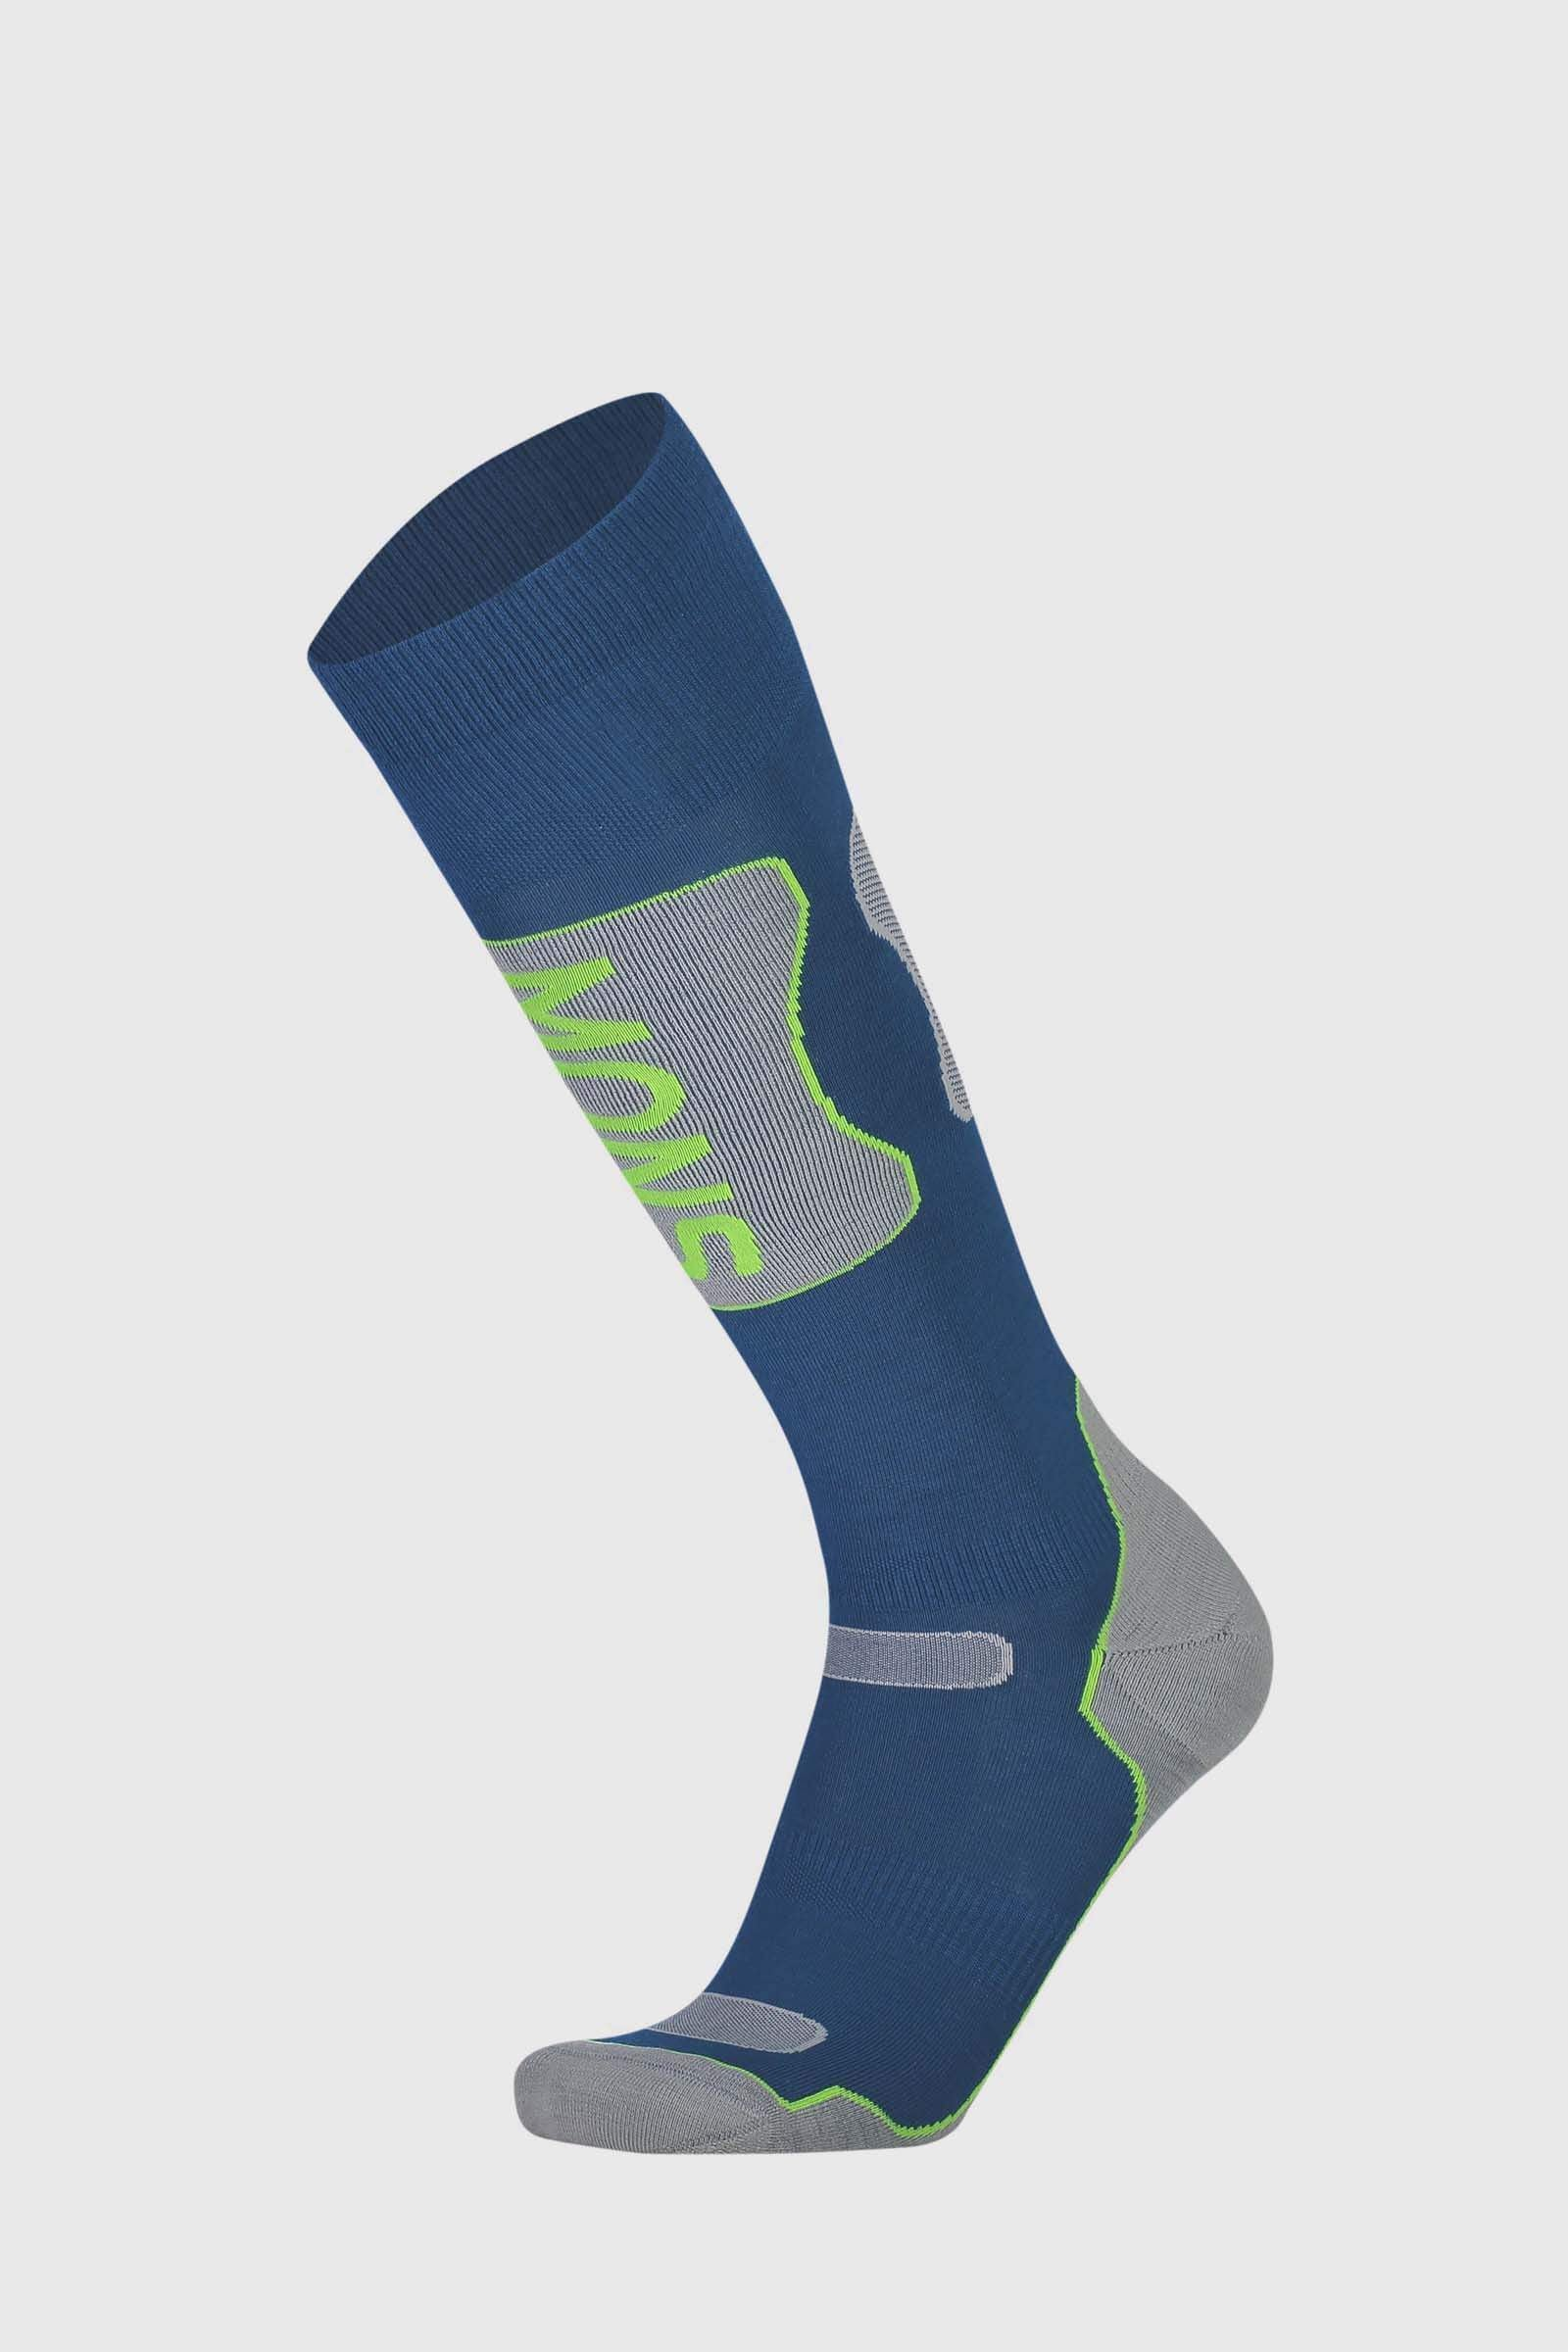 Pro Lite Tech Sock - Oily Blue / Grey / Citrus